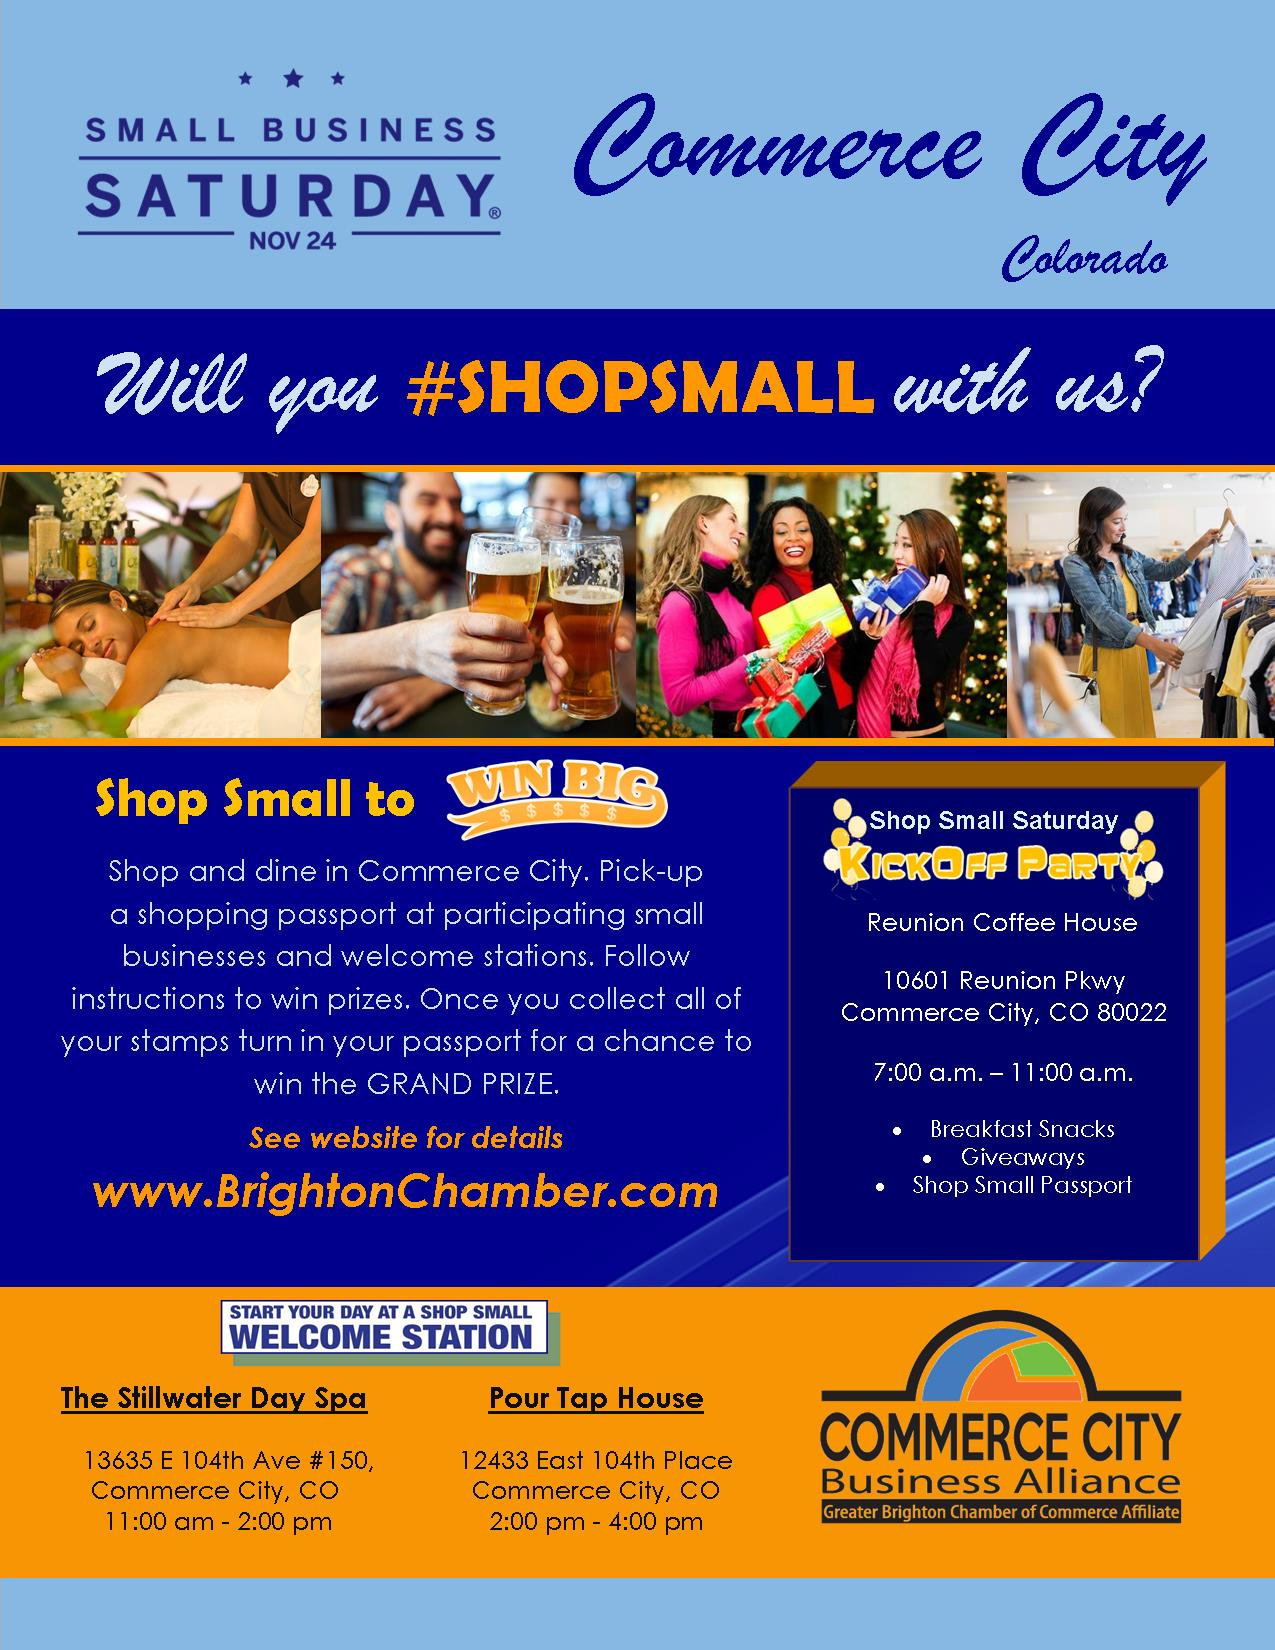 Small-Business-Saturday-Promo---Commerce-City.jpg